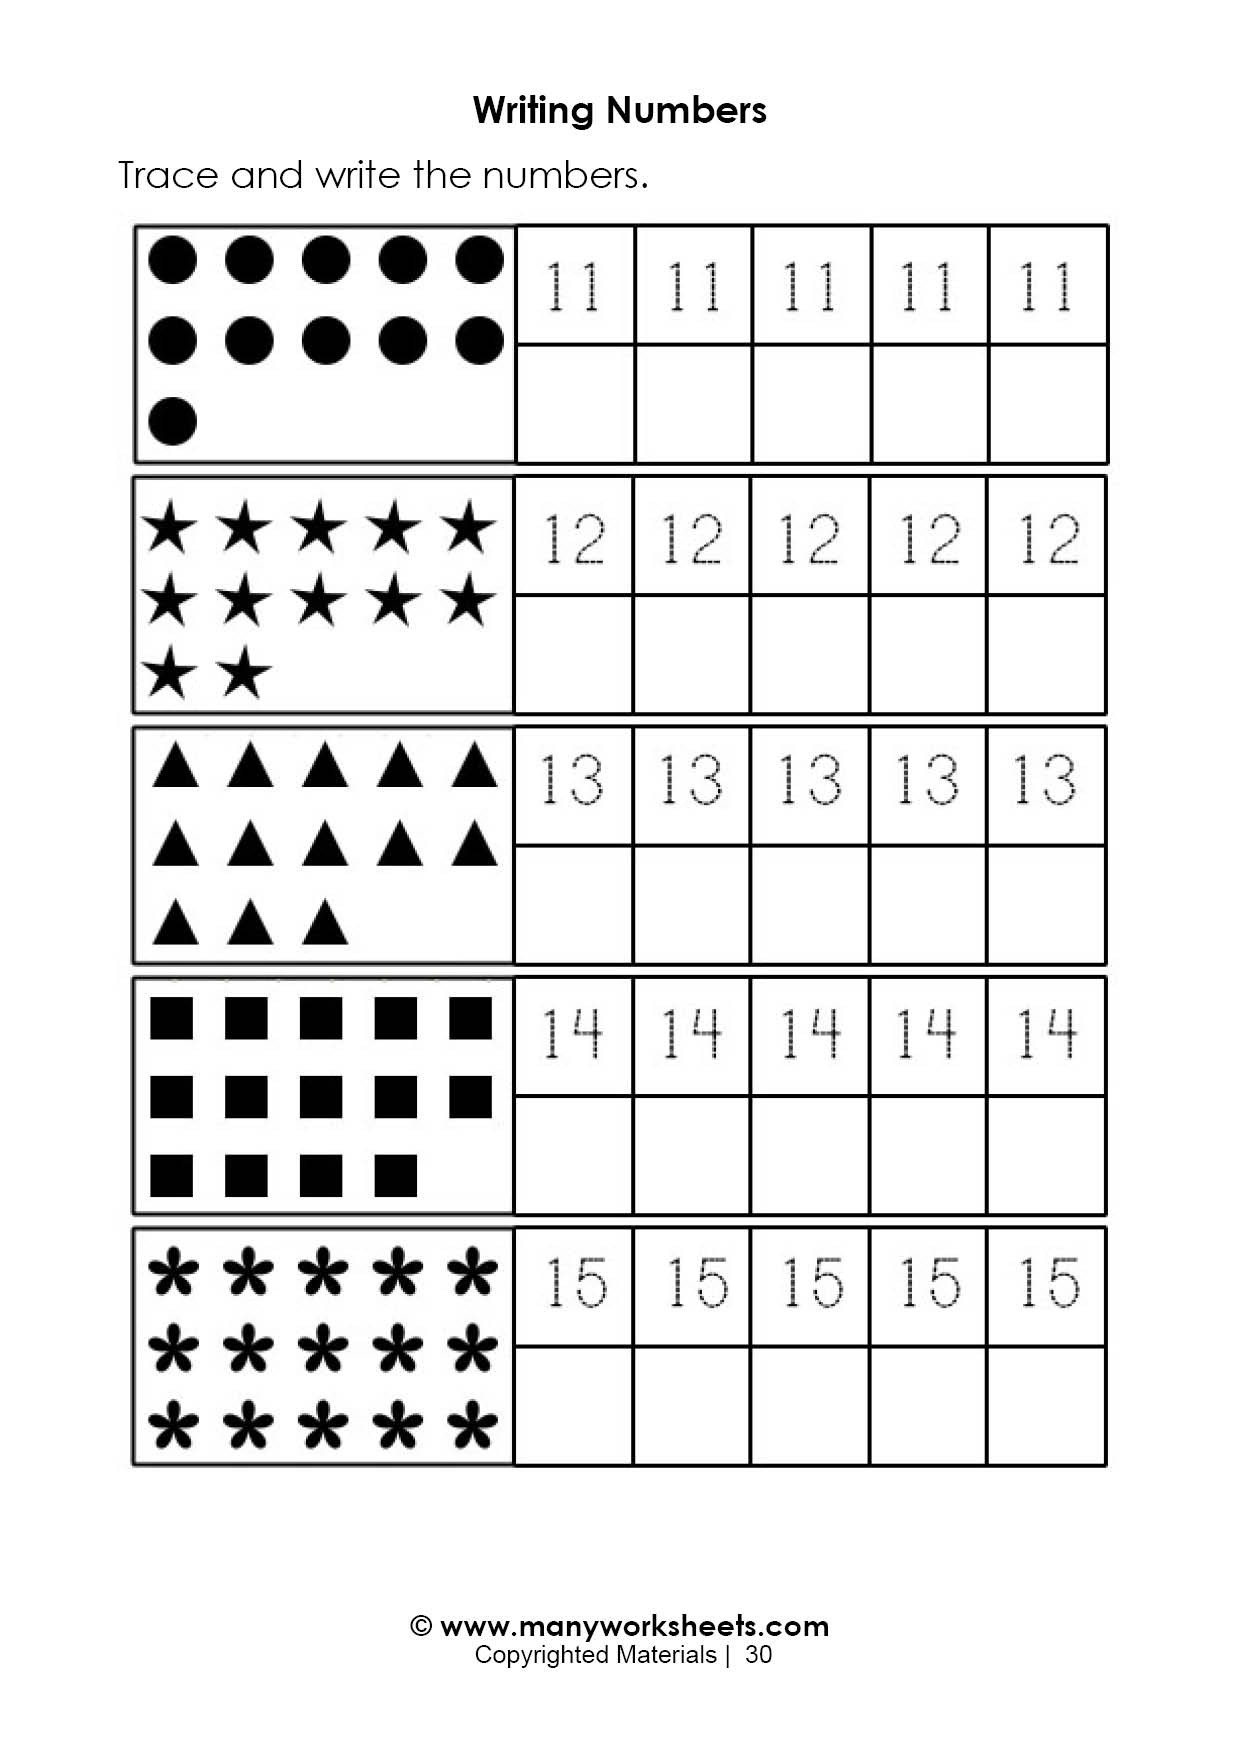 Tracing Numbers 1 20 Printable Tracing and Handwriting Numbers 11 15 Worksheet